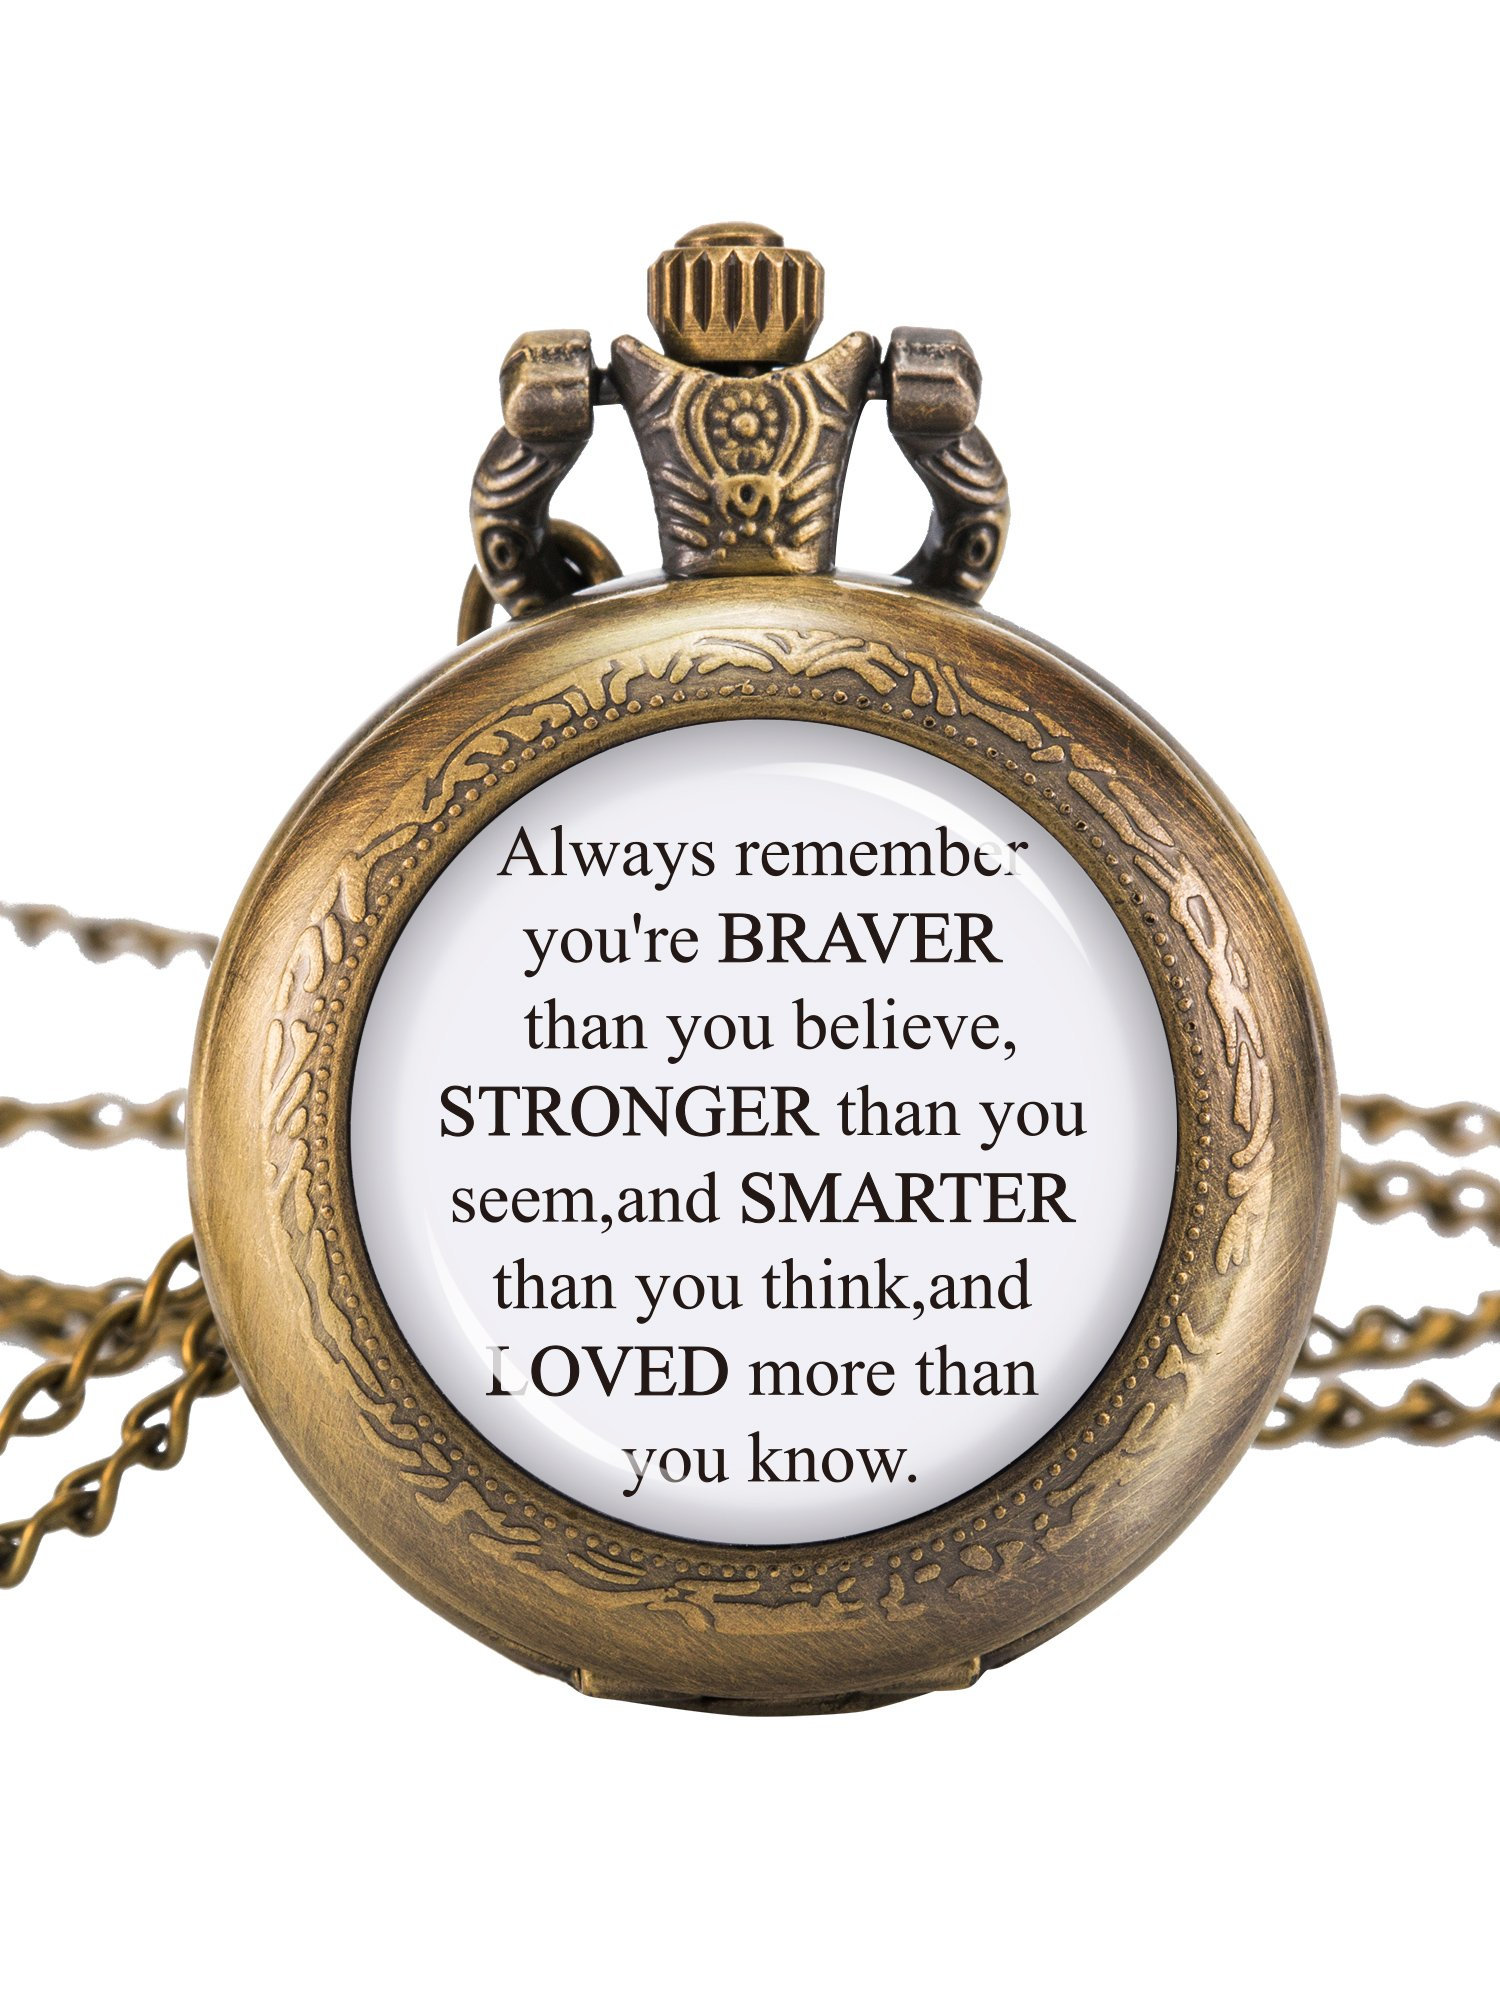 Hicarer Pocket Watch Chain You Are Braver Stronger Smarter Than You Think Personalised Pocket Watch for Women Men (Bronze)